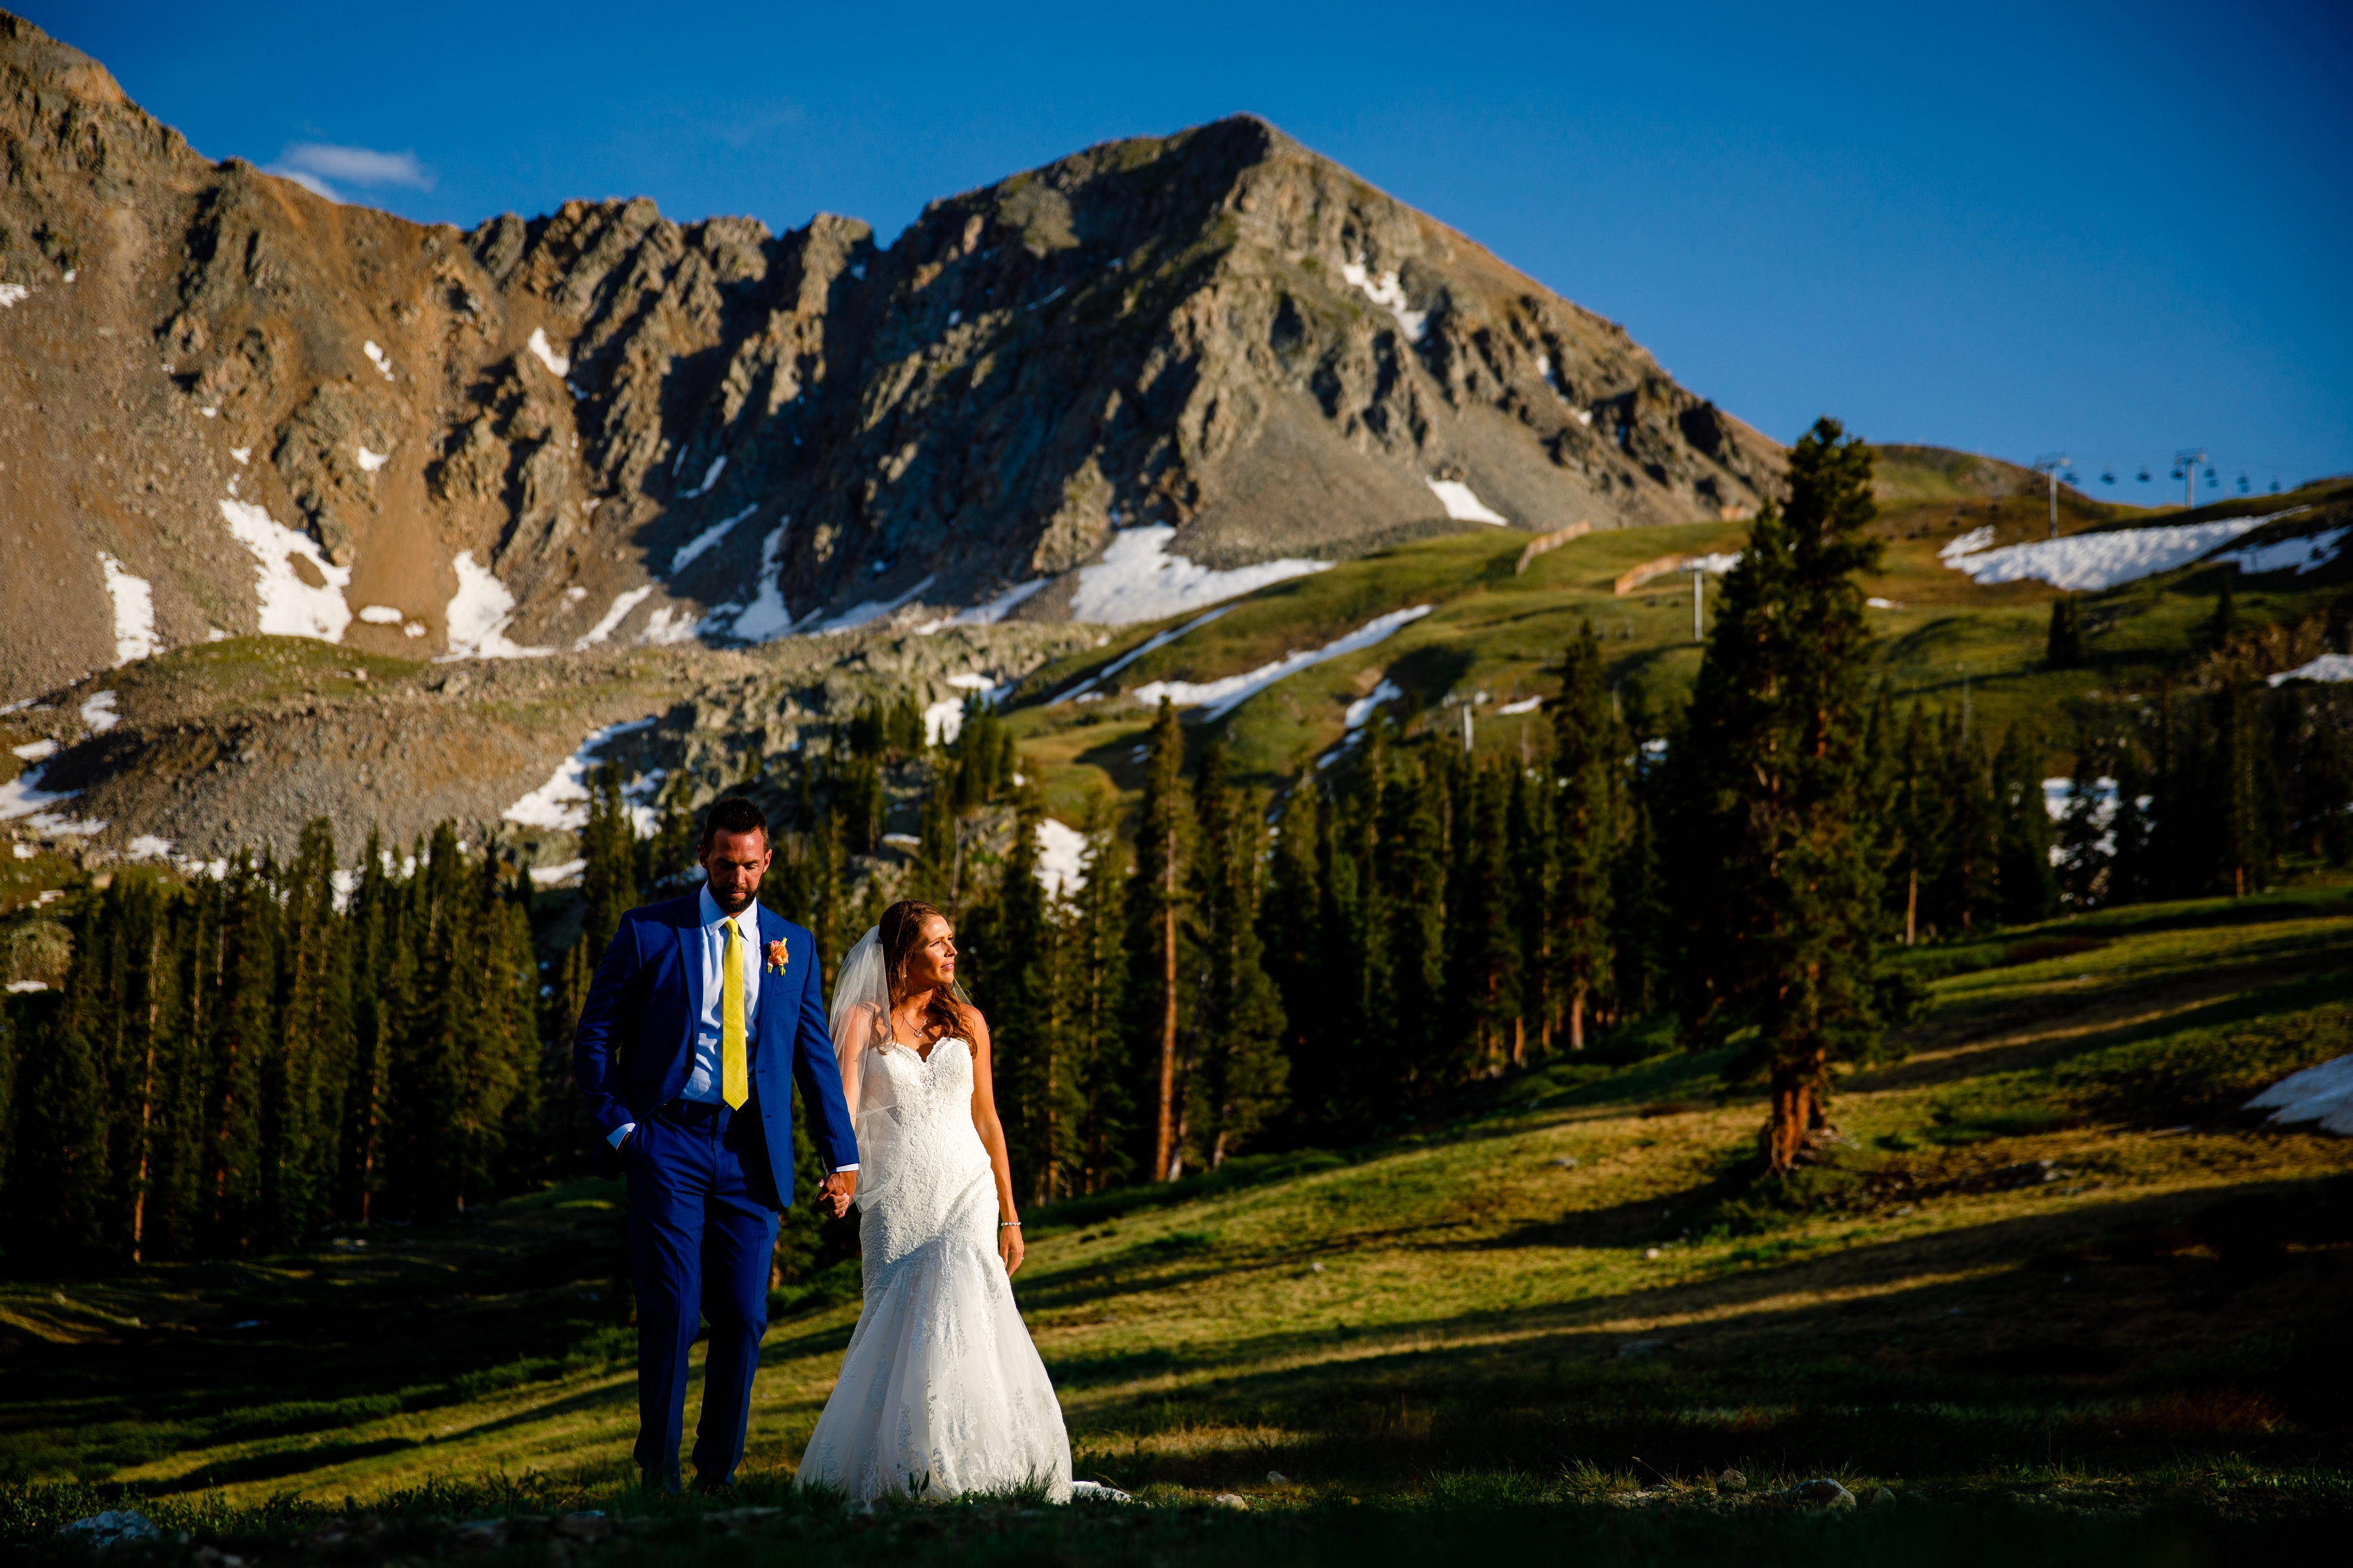 Arapahoe Basin Summer Wedding Photo of bride & groom walking